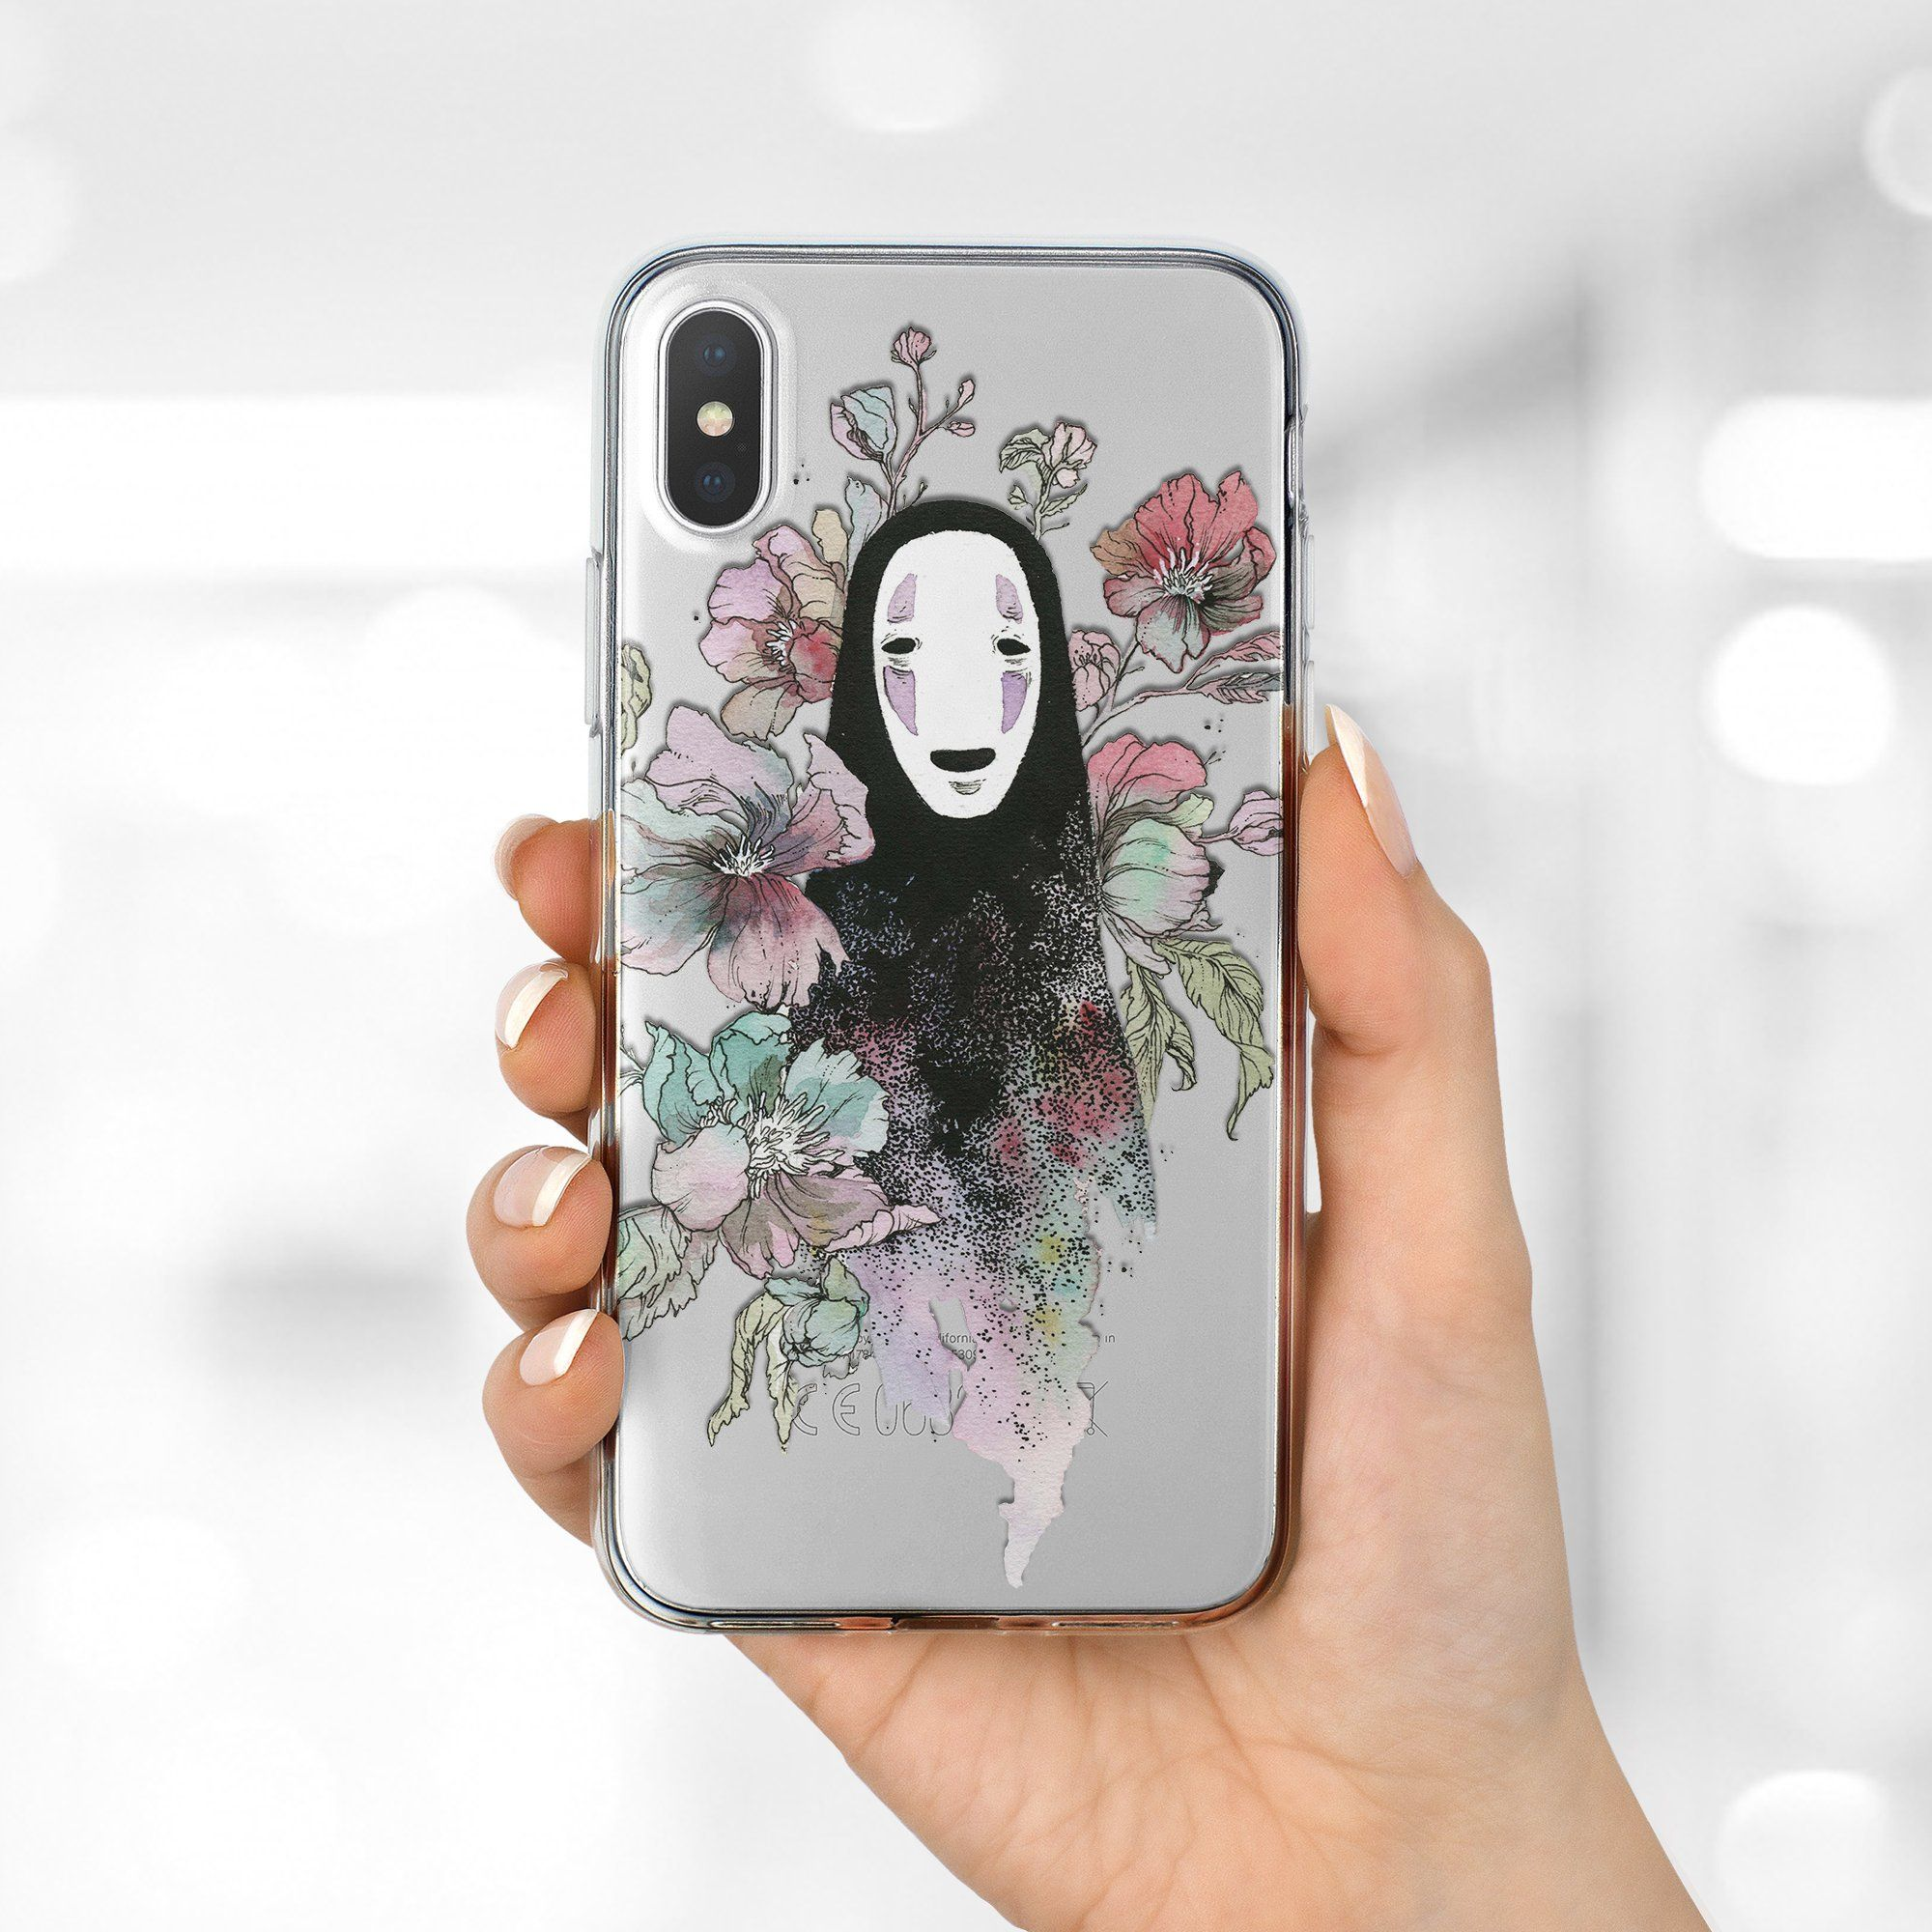 Anime Case Iphone 8 Case Phone Case Iphone X Case Iphone 8 Plus Case Iphone 7 Case Iphone 6 Case Iphone Anime Cove Iphone Cases Iphone Phone Cases Iphone Cover